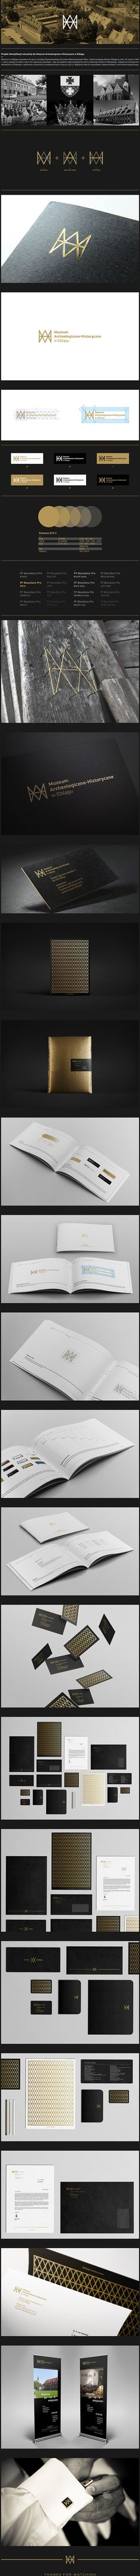 Museum of Archeology and History in Elblag on Behance